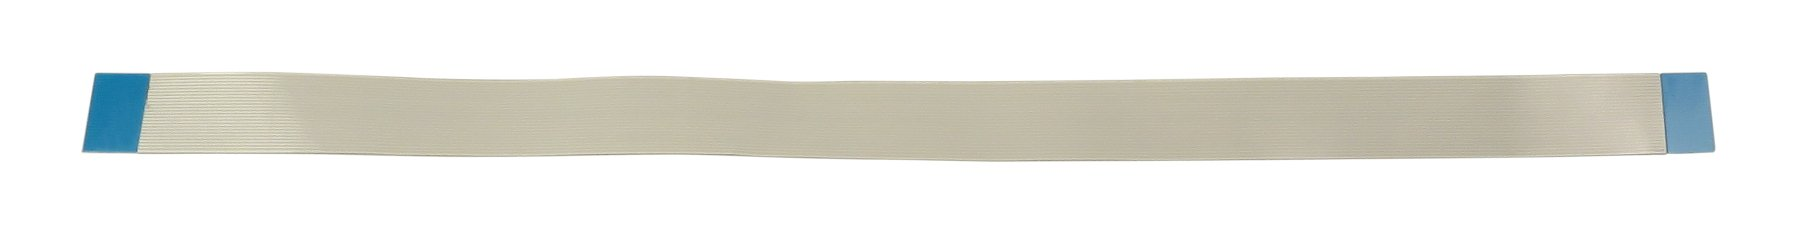 CD Mechanism Ribbon Cable for GIG-MASTER